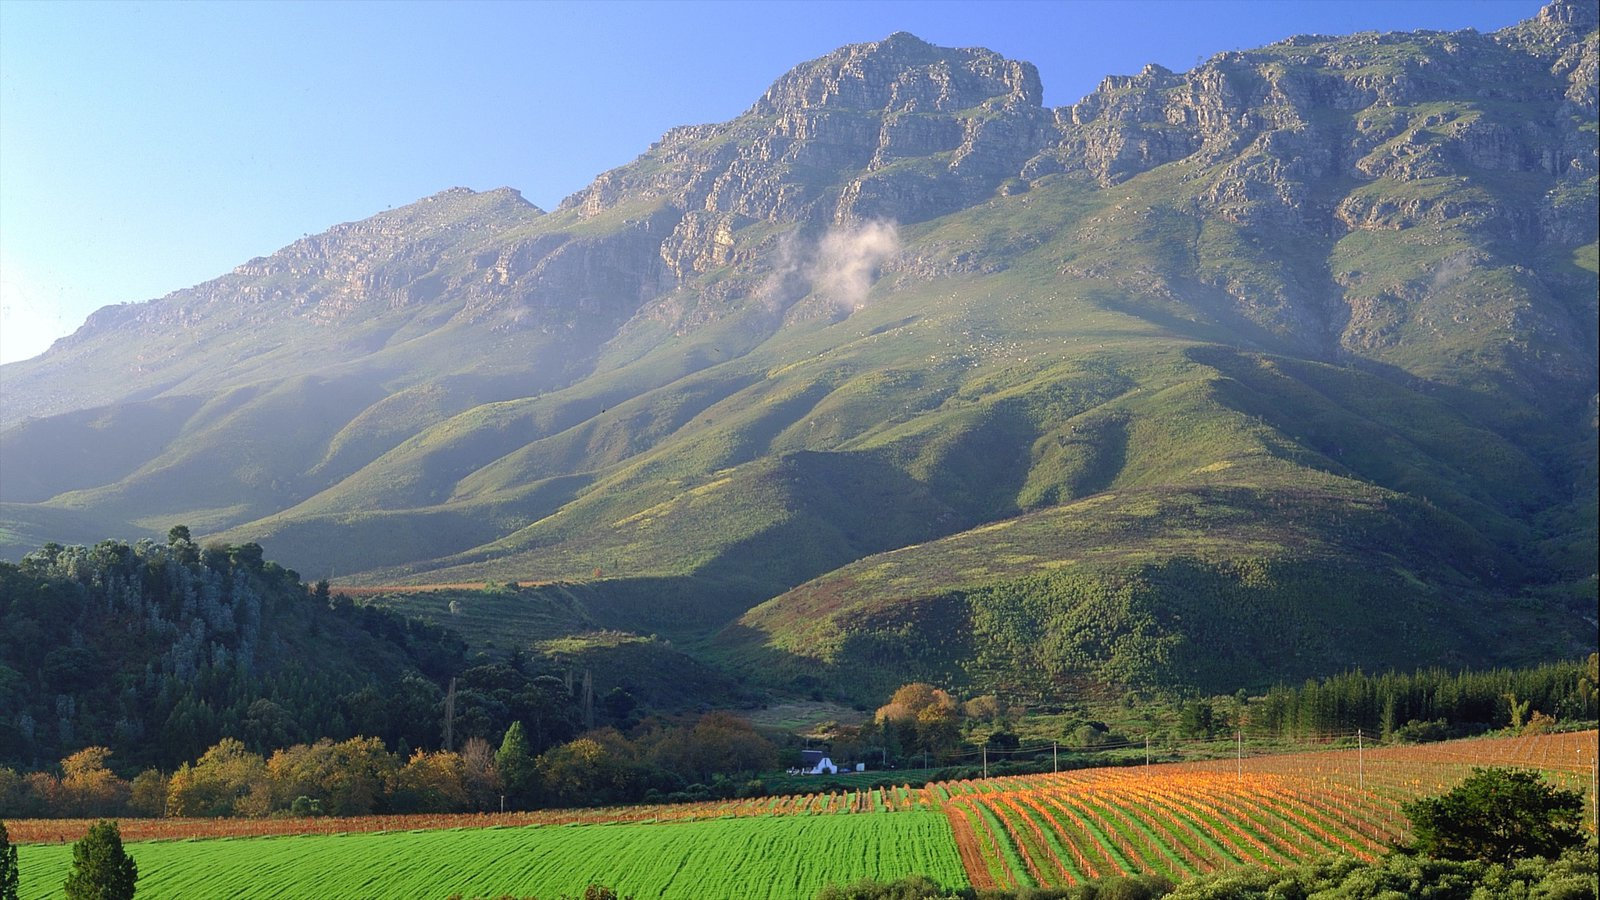 stellenbosch wine tasting and what to expect